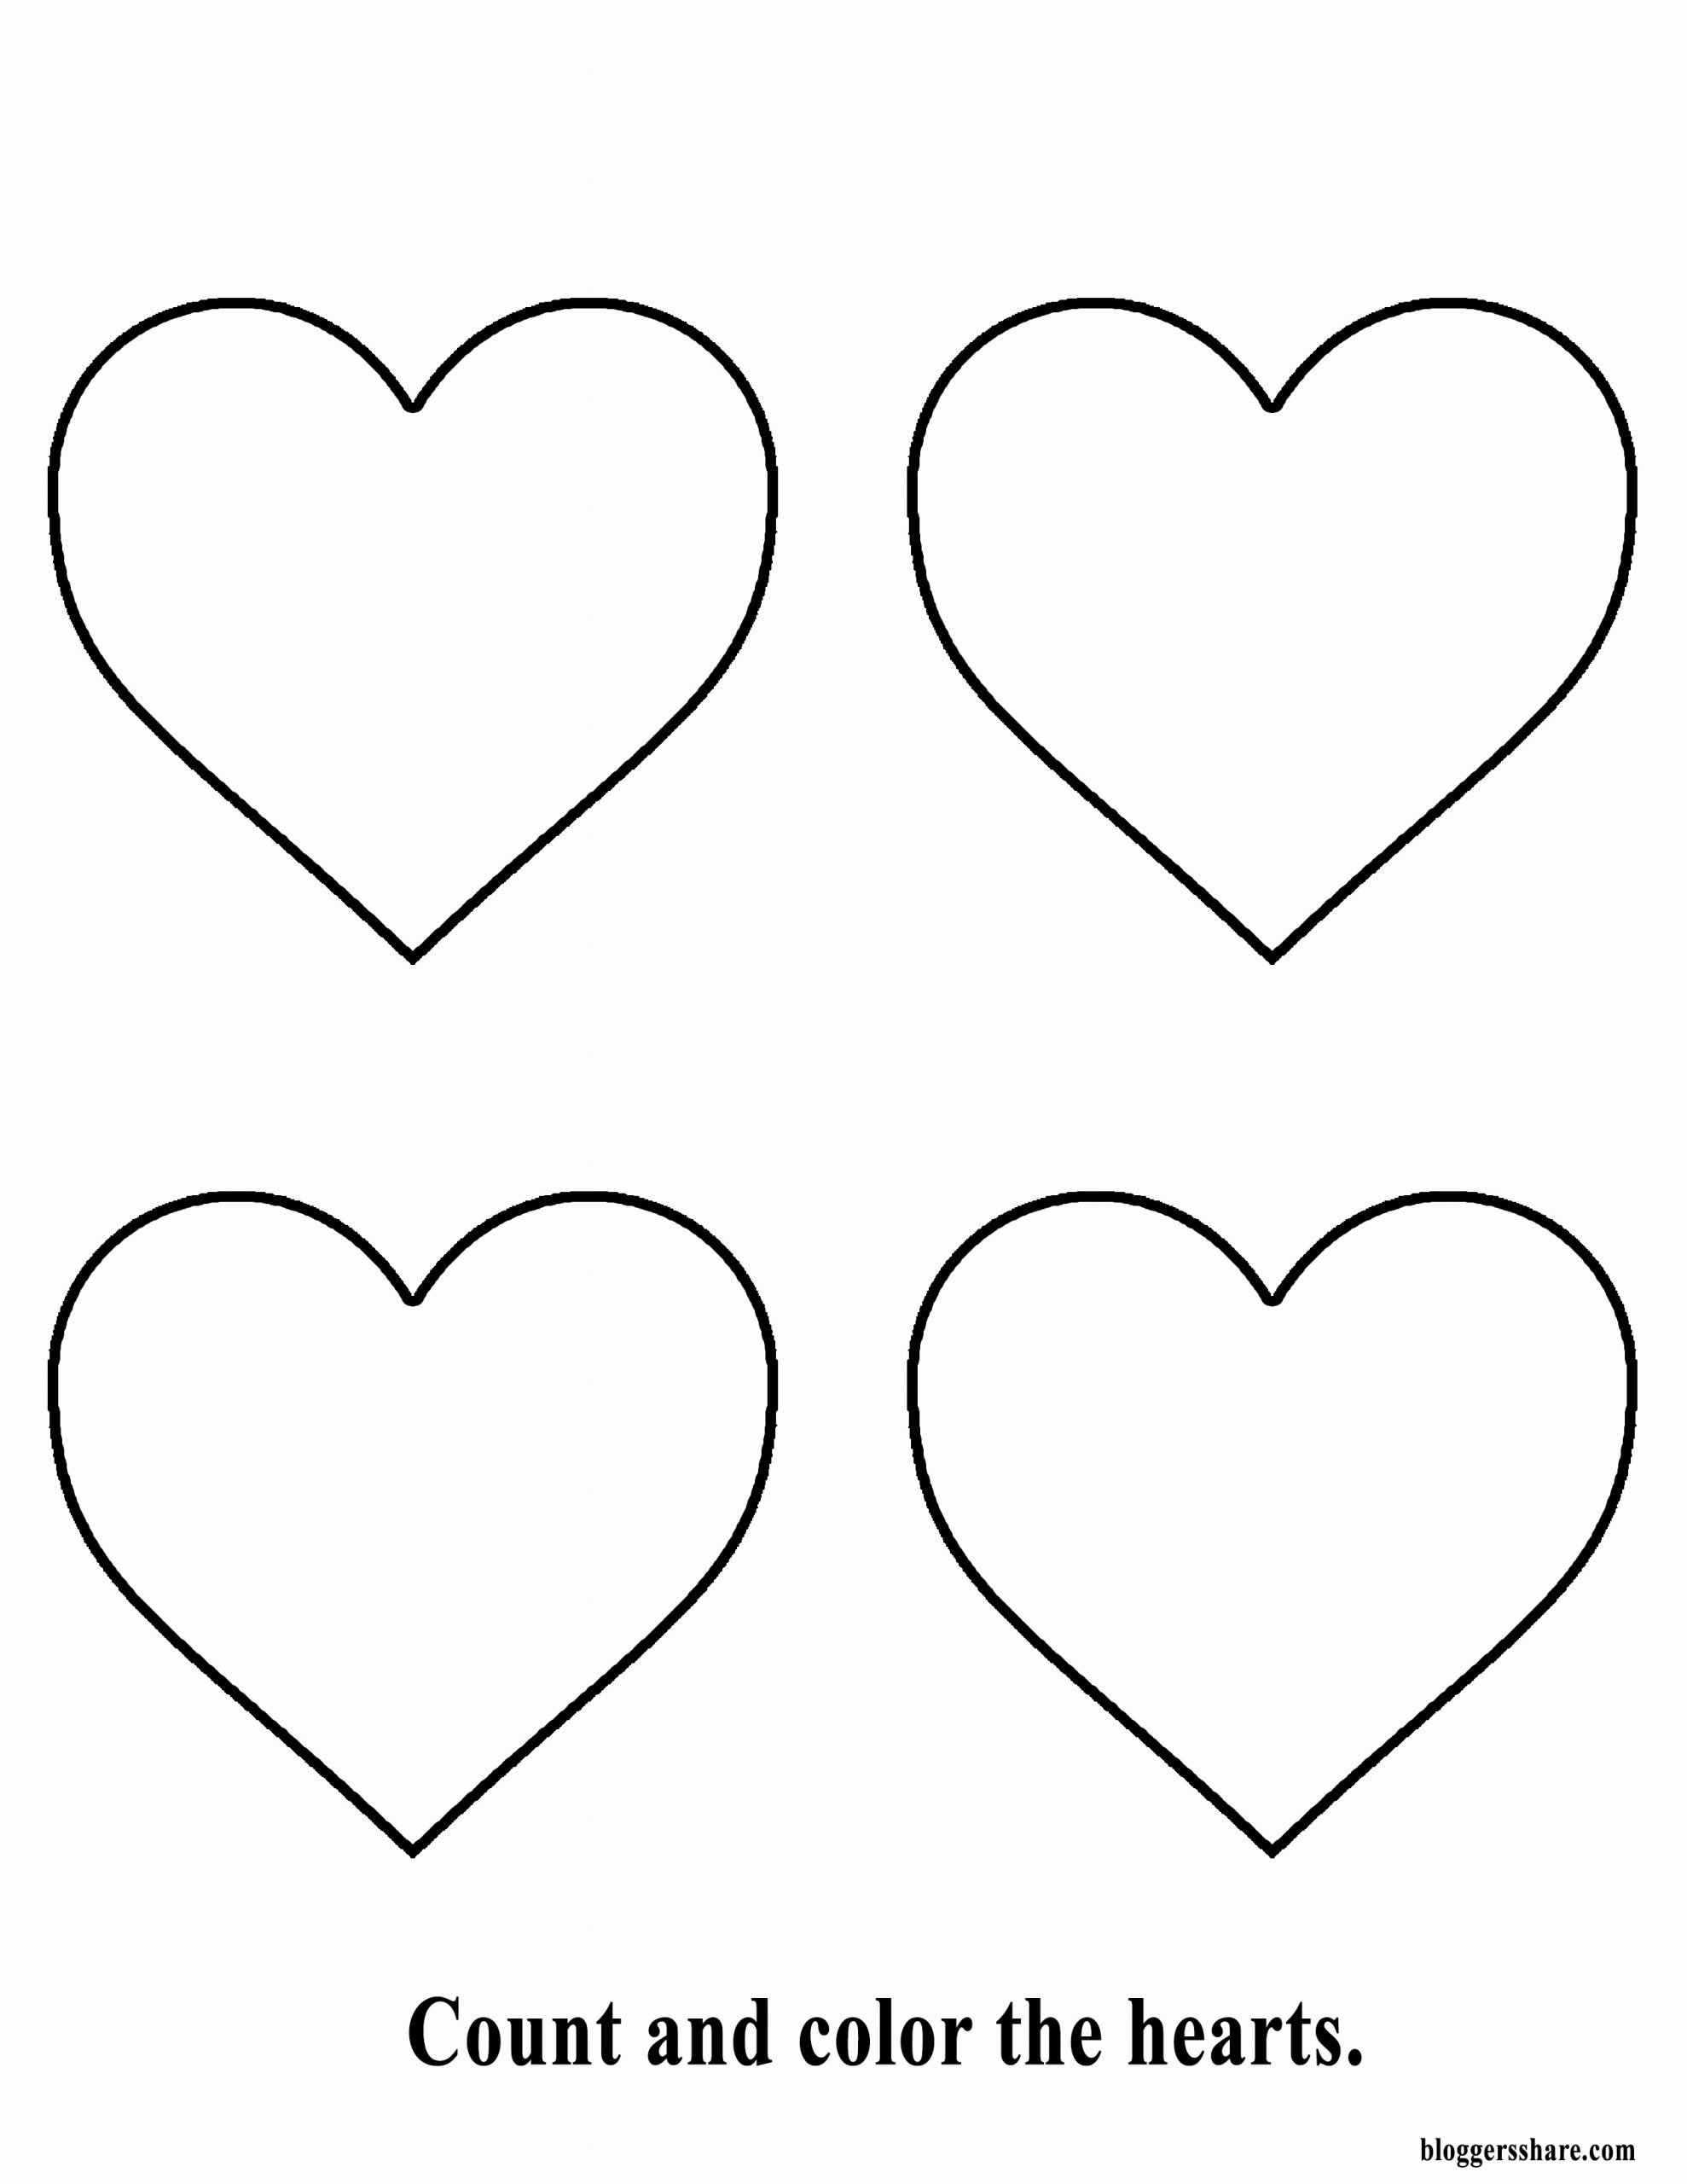 Heart Coloring Worksheet Beautiful Free Coloring Page Heart Printable for Kids Free